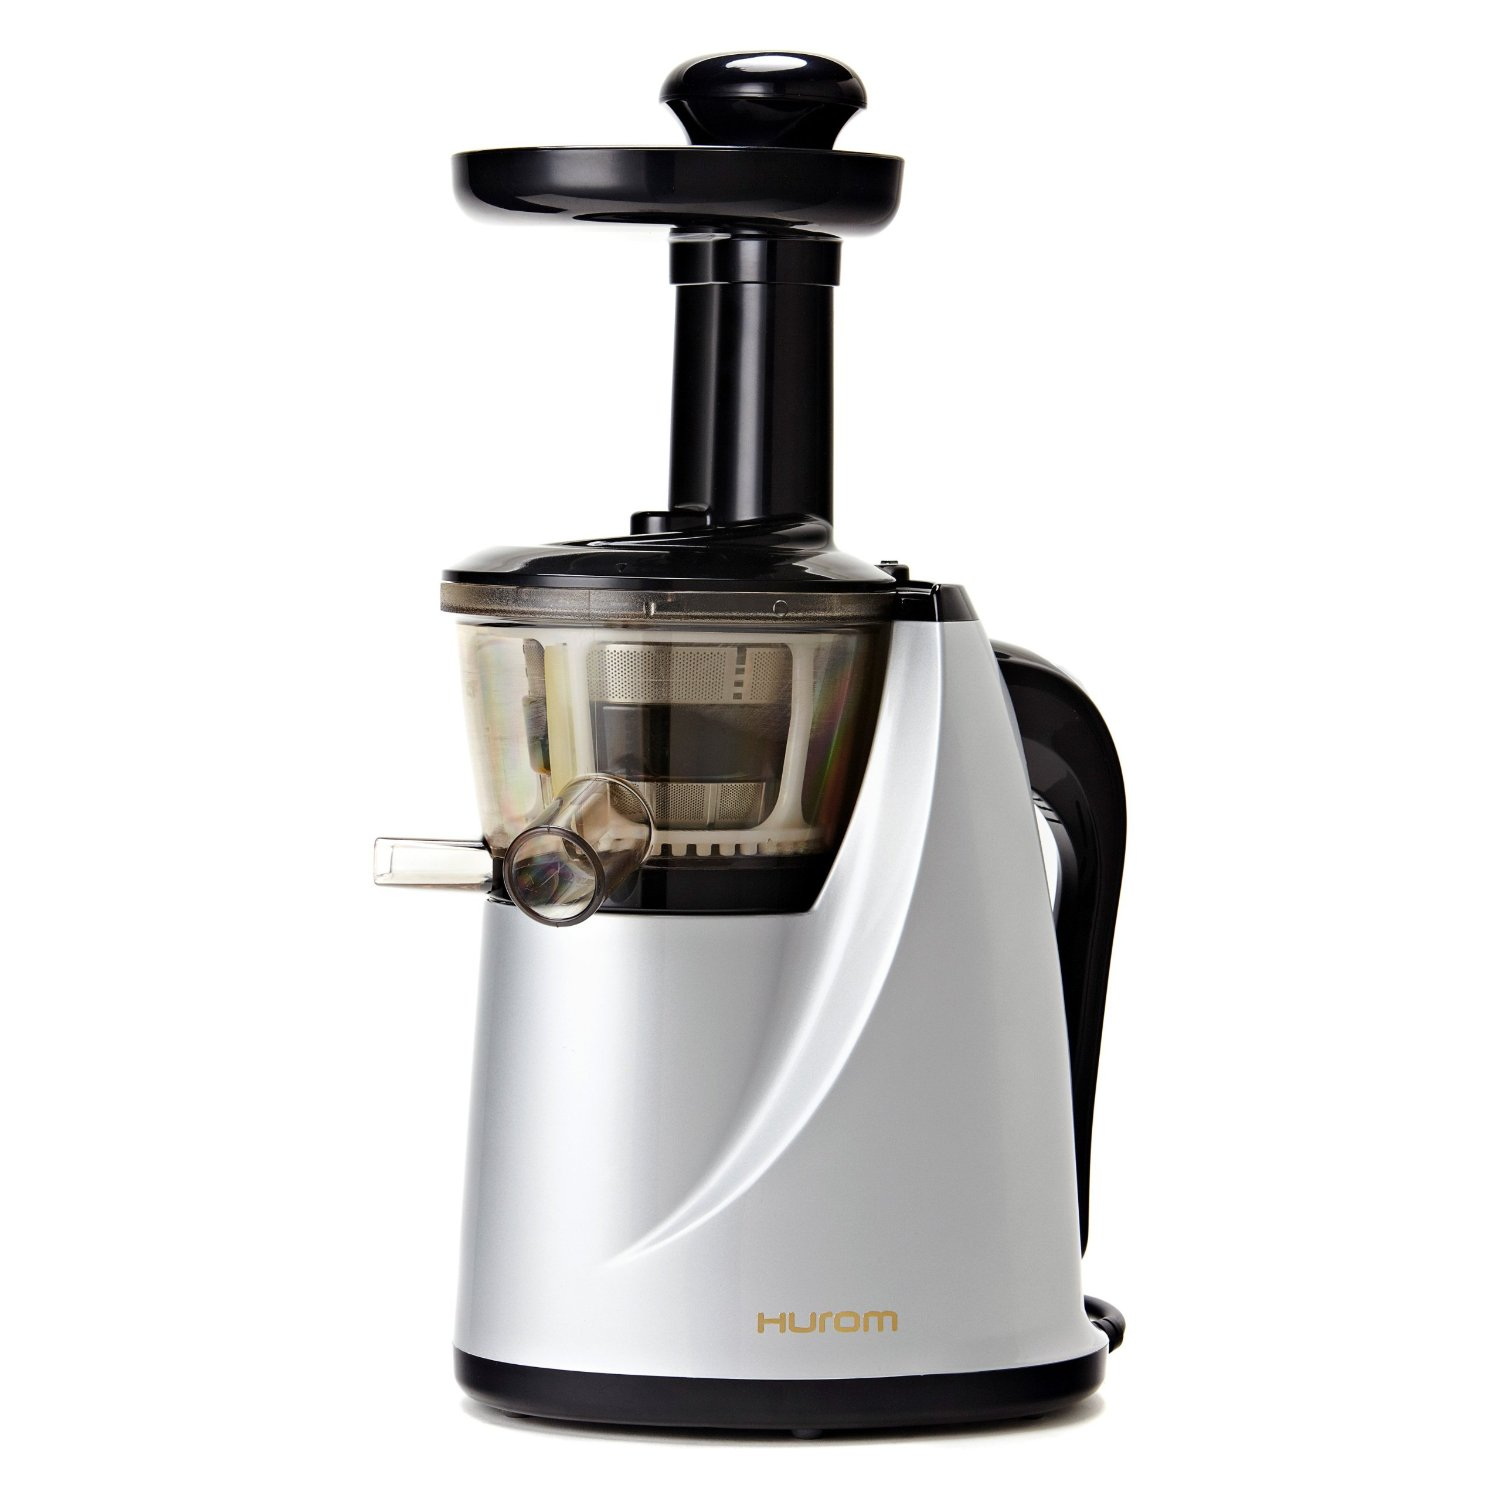 Ecosway Slow Juicer Review : Hurom HU-100 Masticating Slow Juicer Review - Best Cold Press Juicers